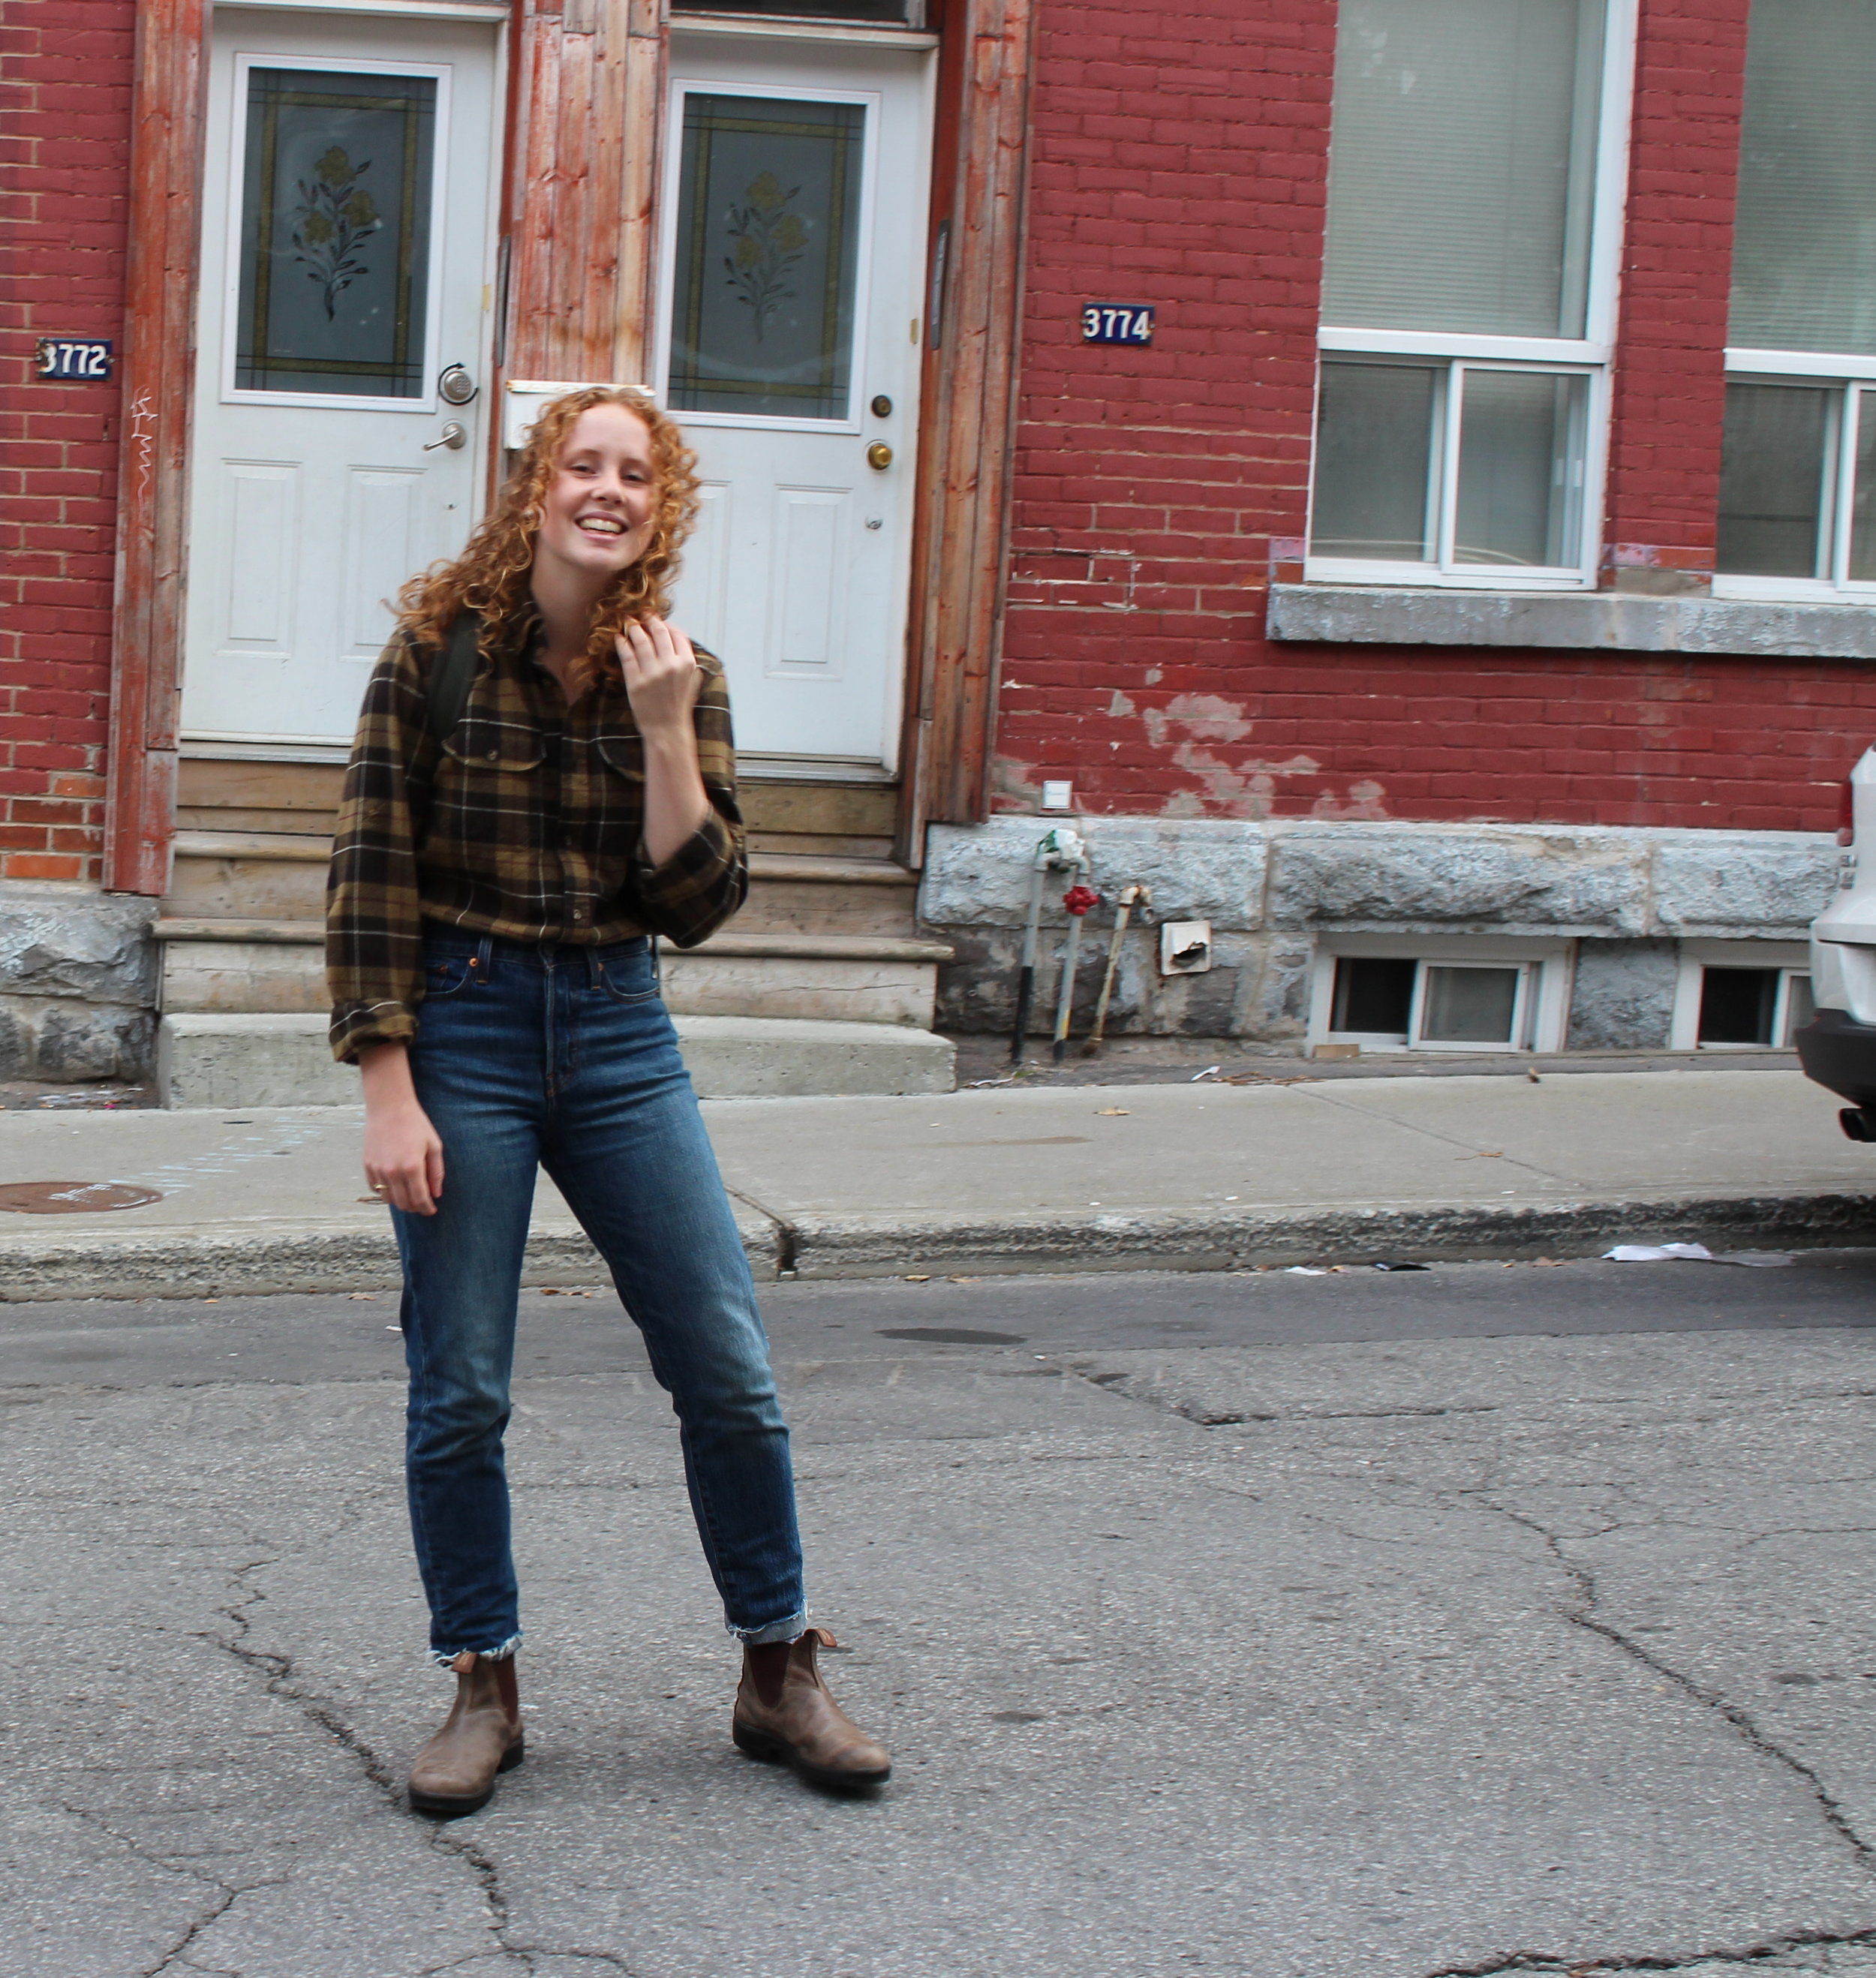 girl posing in front of house with jeans, flannel, and backpack